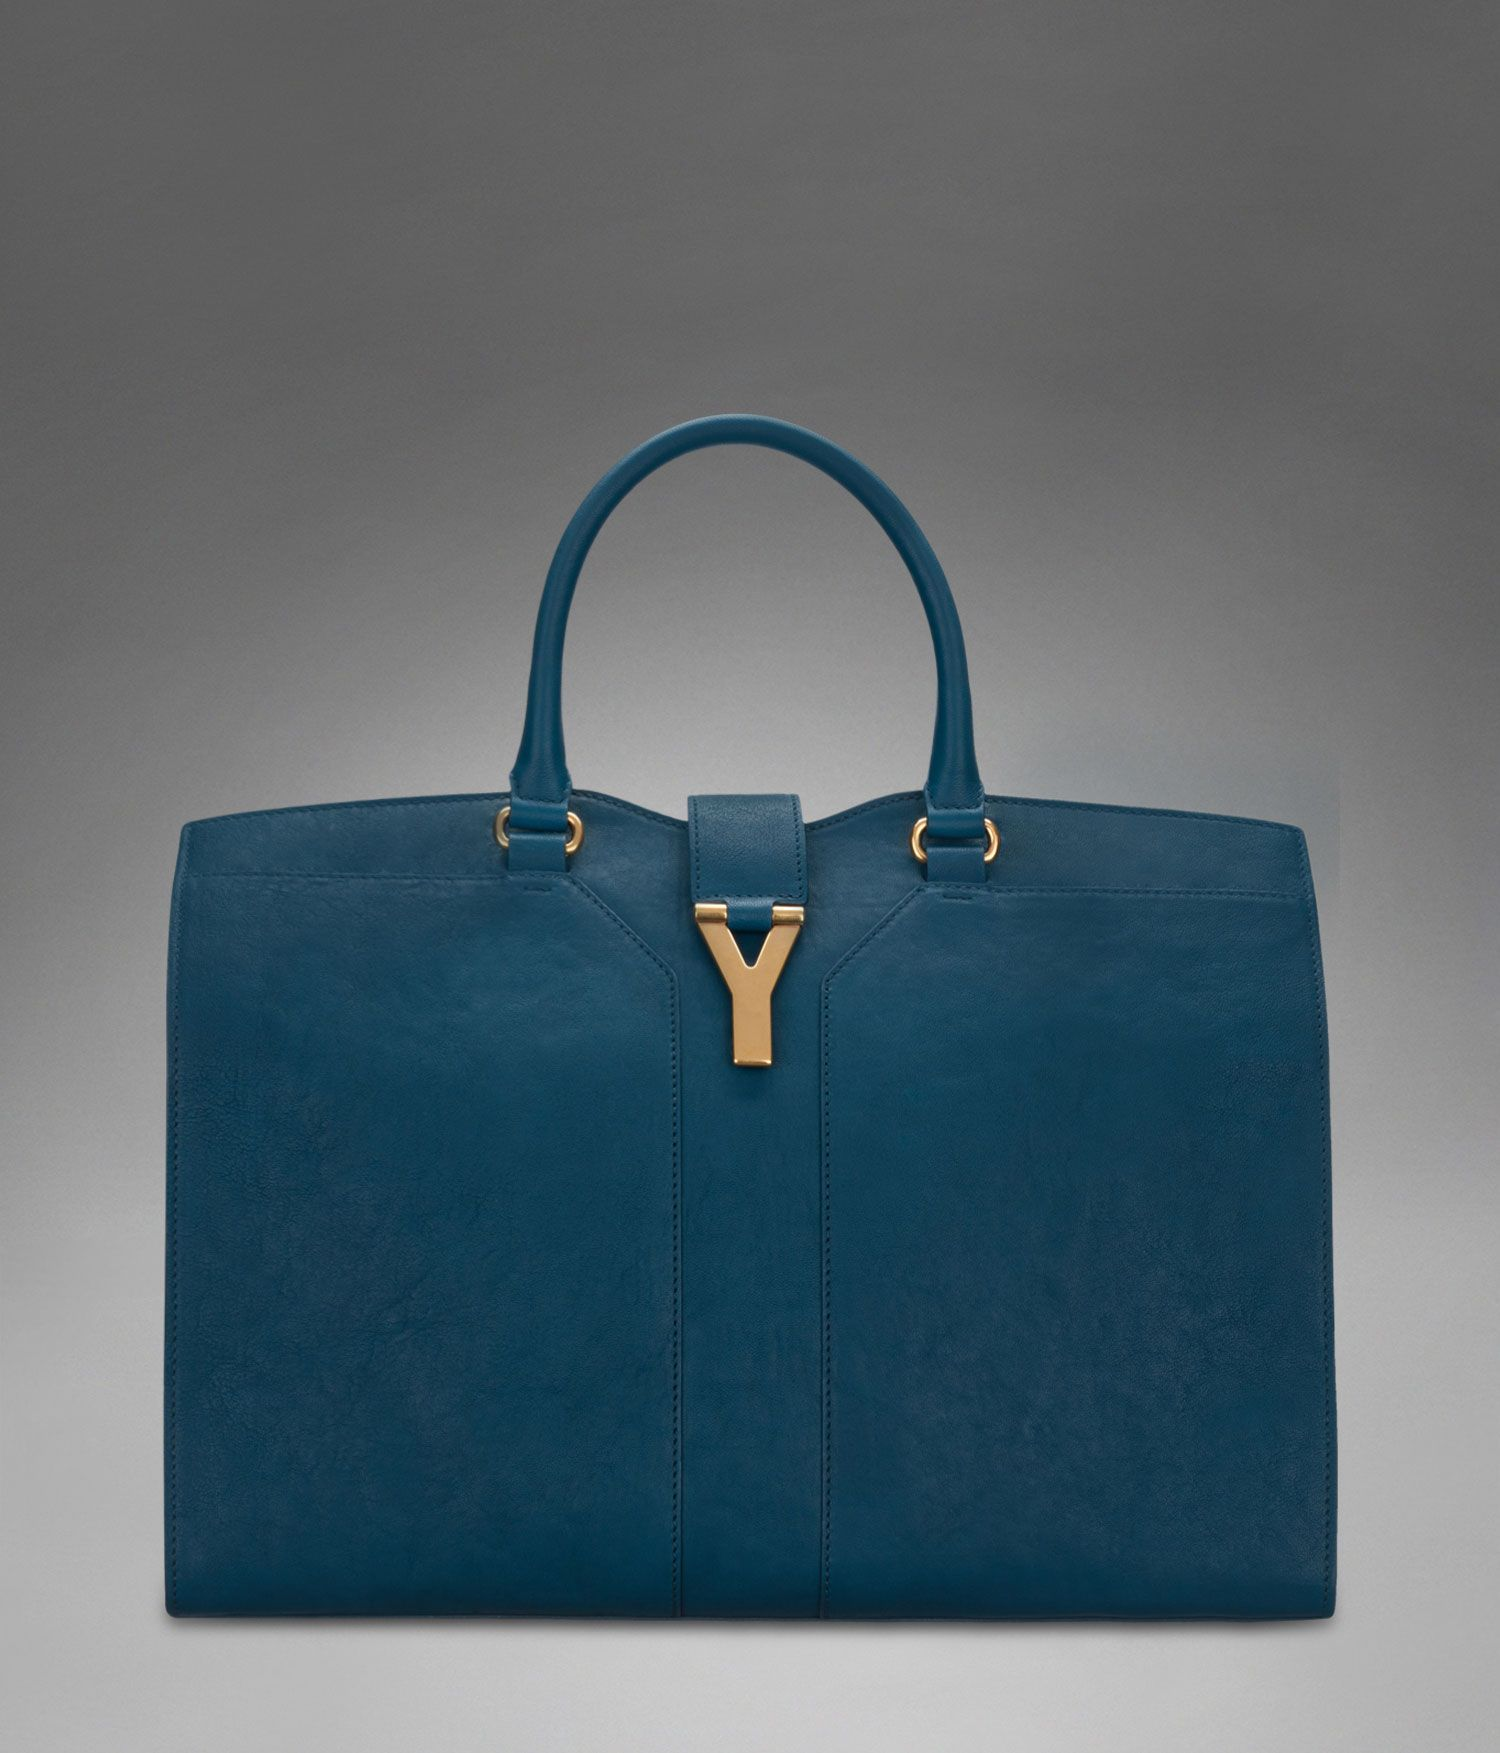 f2569e02 Large YSL Cabas Chyc in Peacock Blue Leather - Chyc – Handbags ...